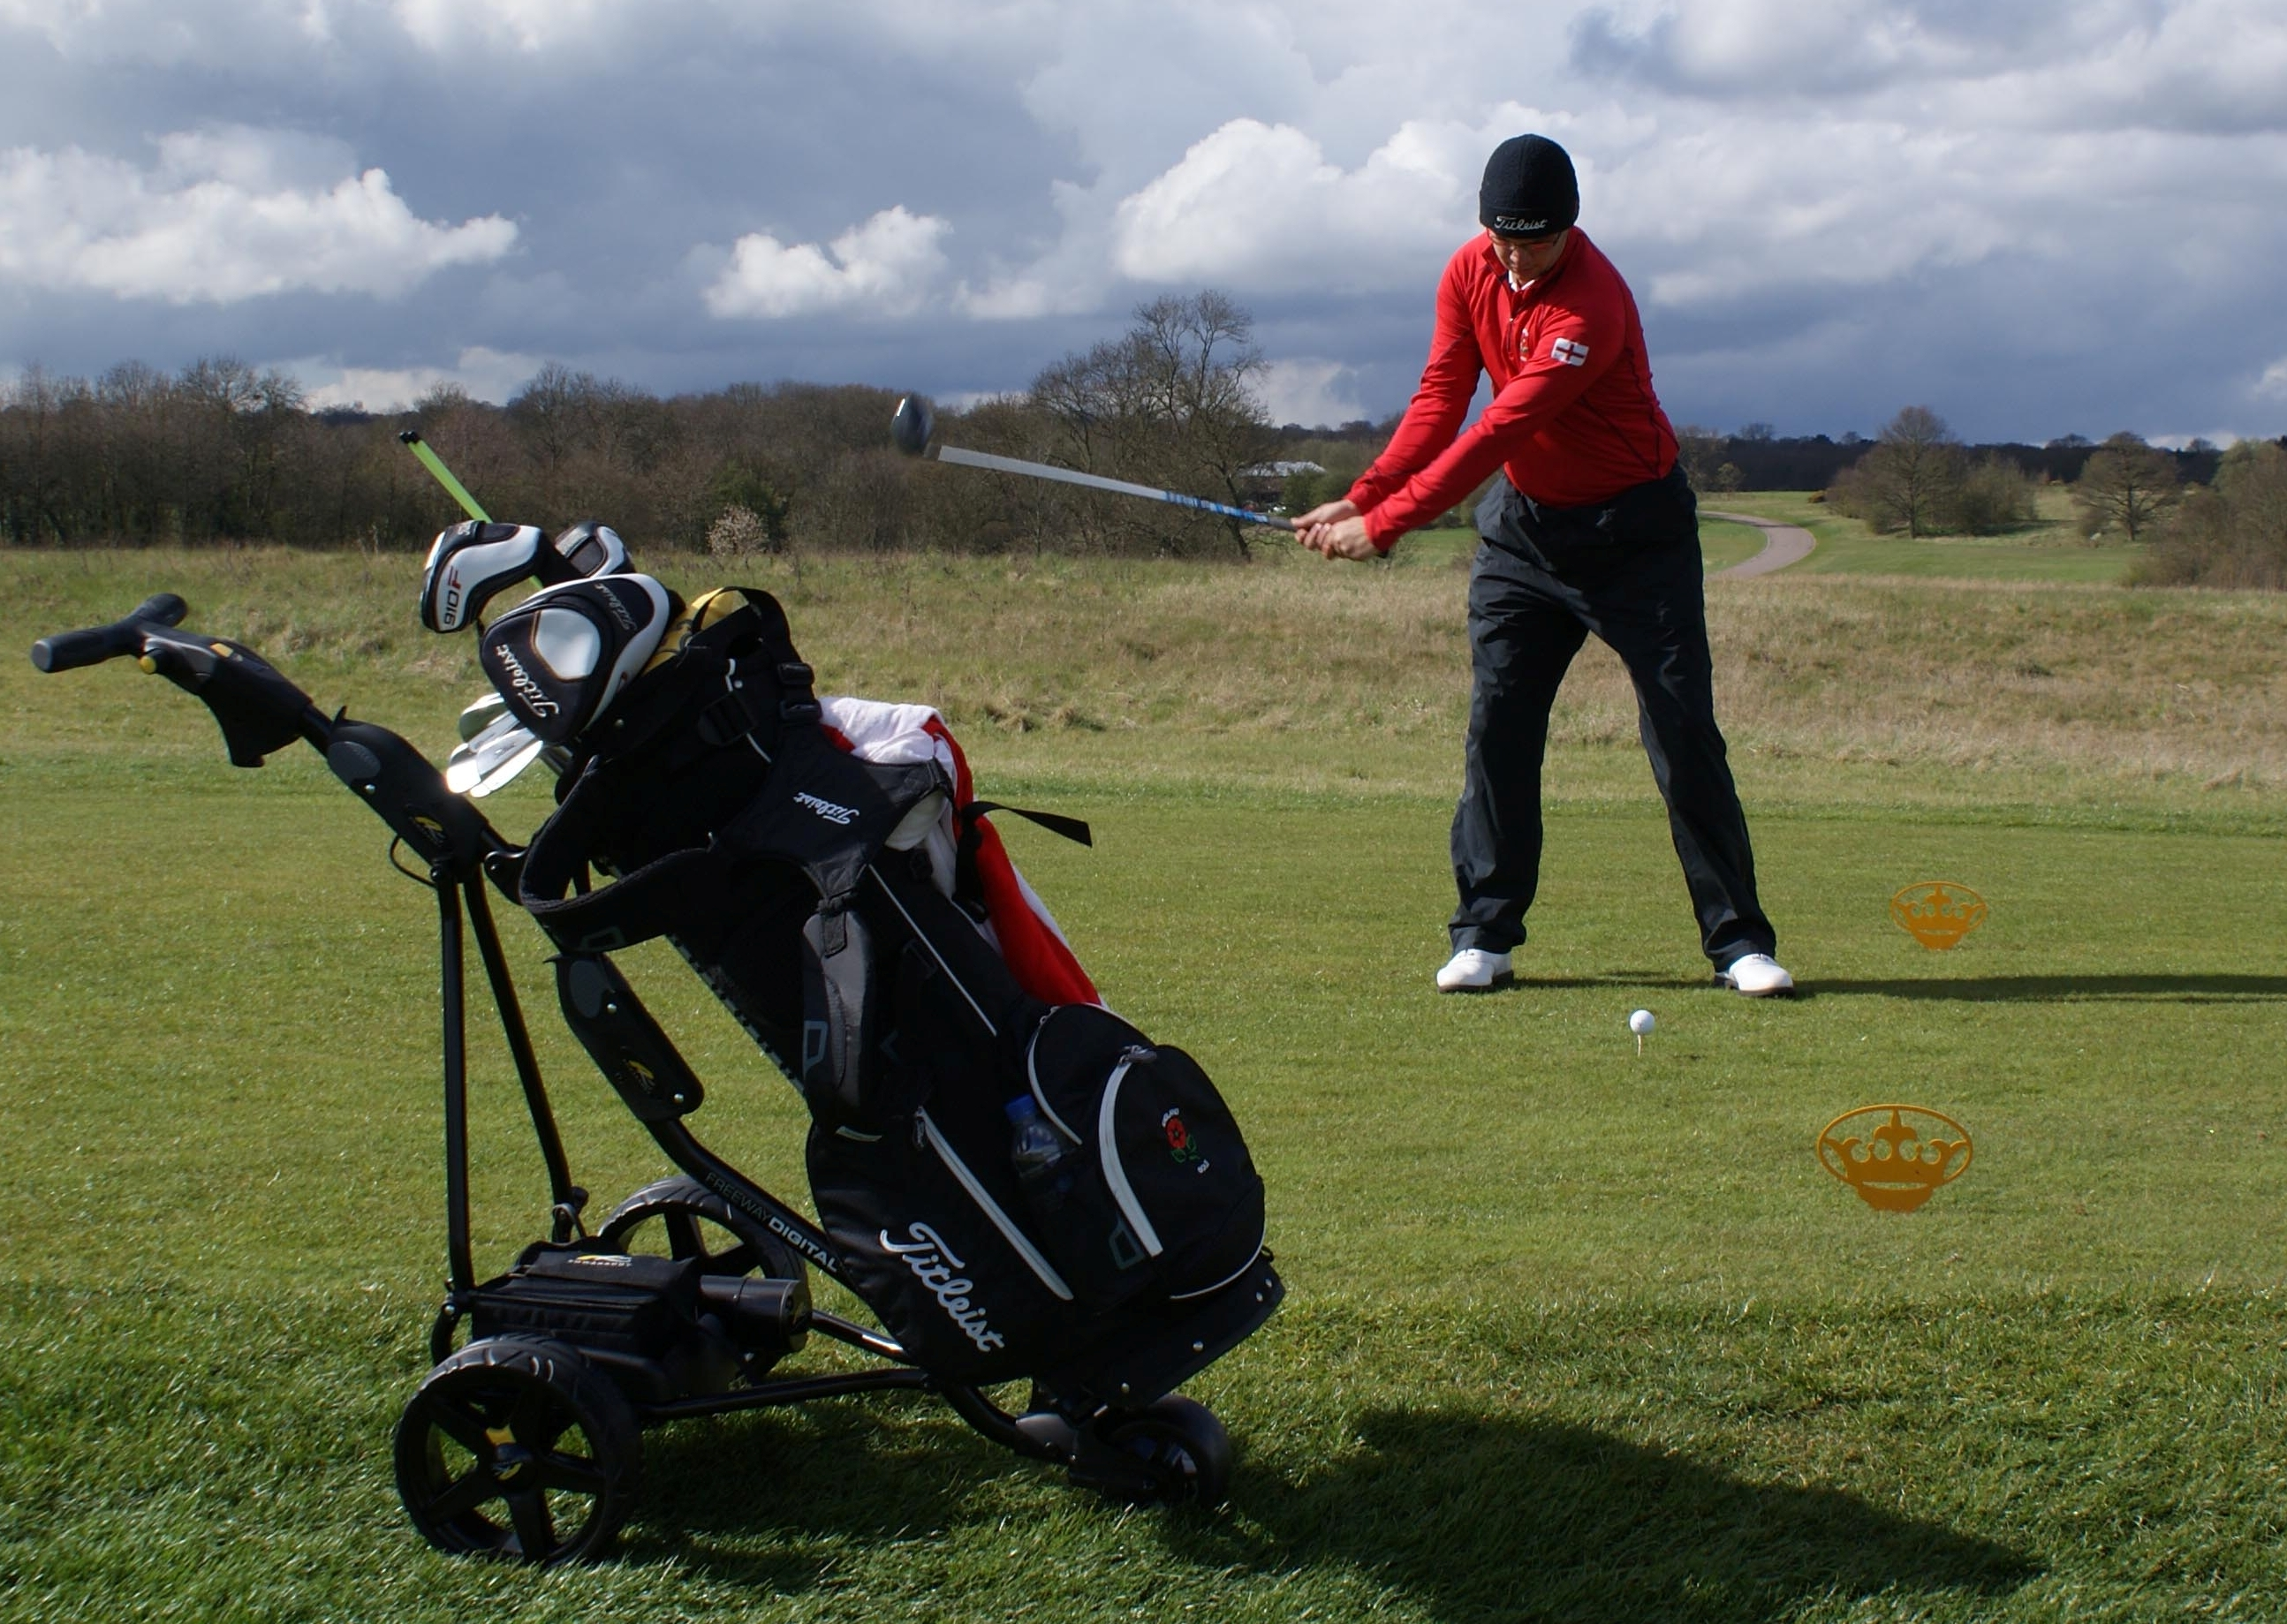 In swing: Ben at The London Golf Club